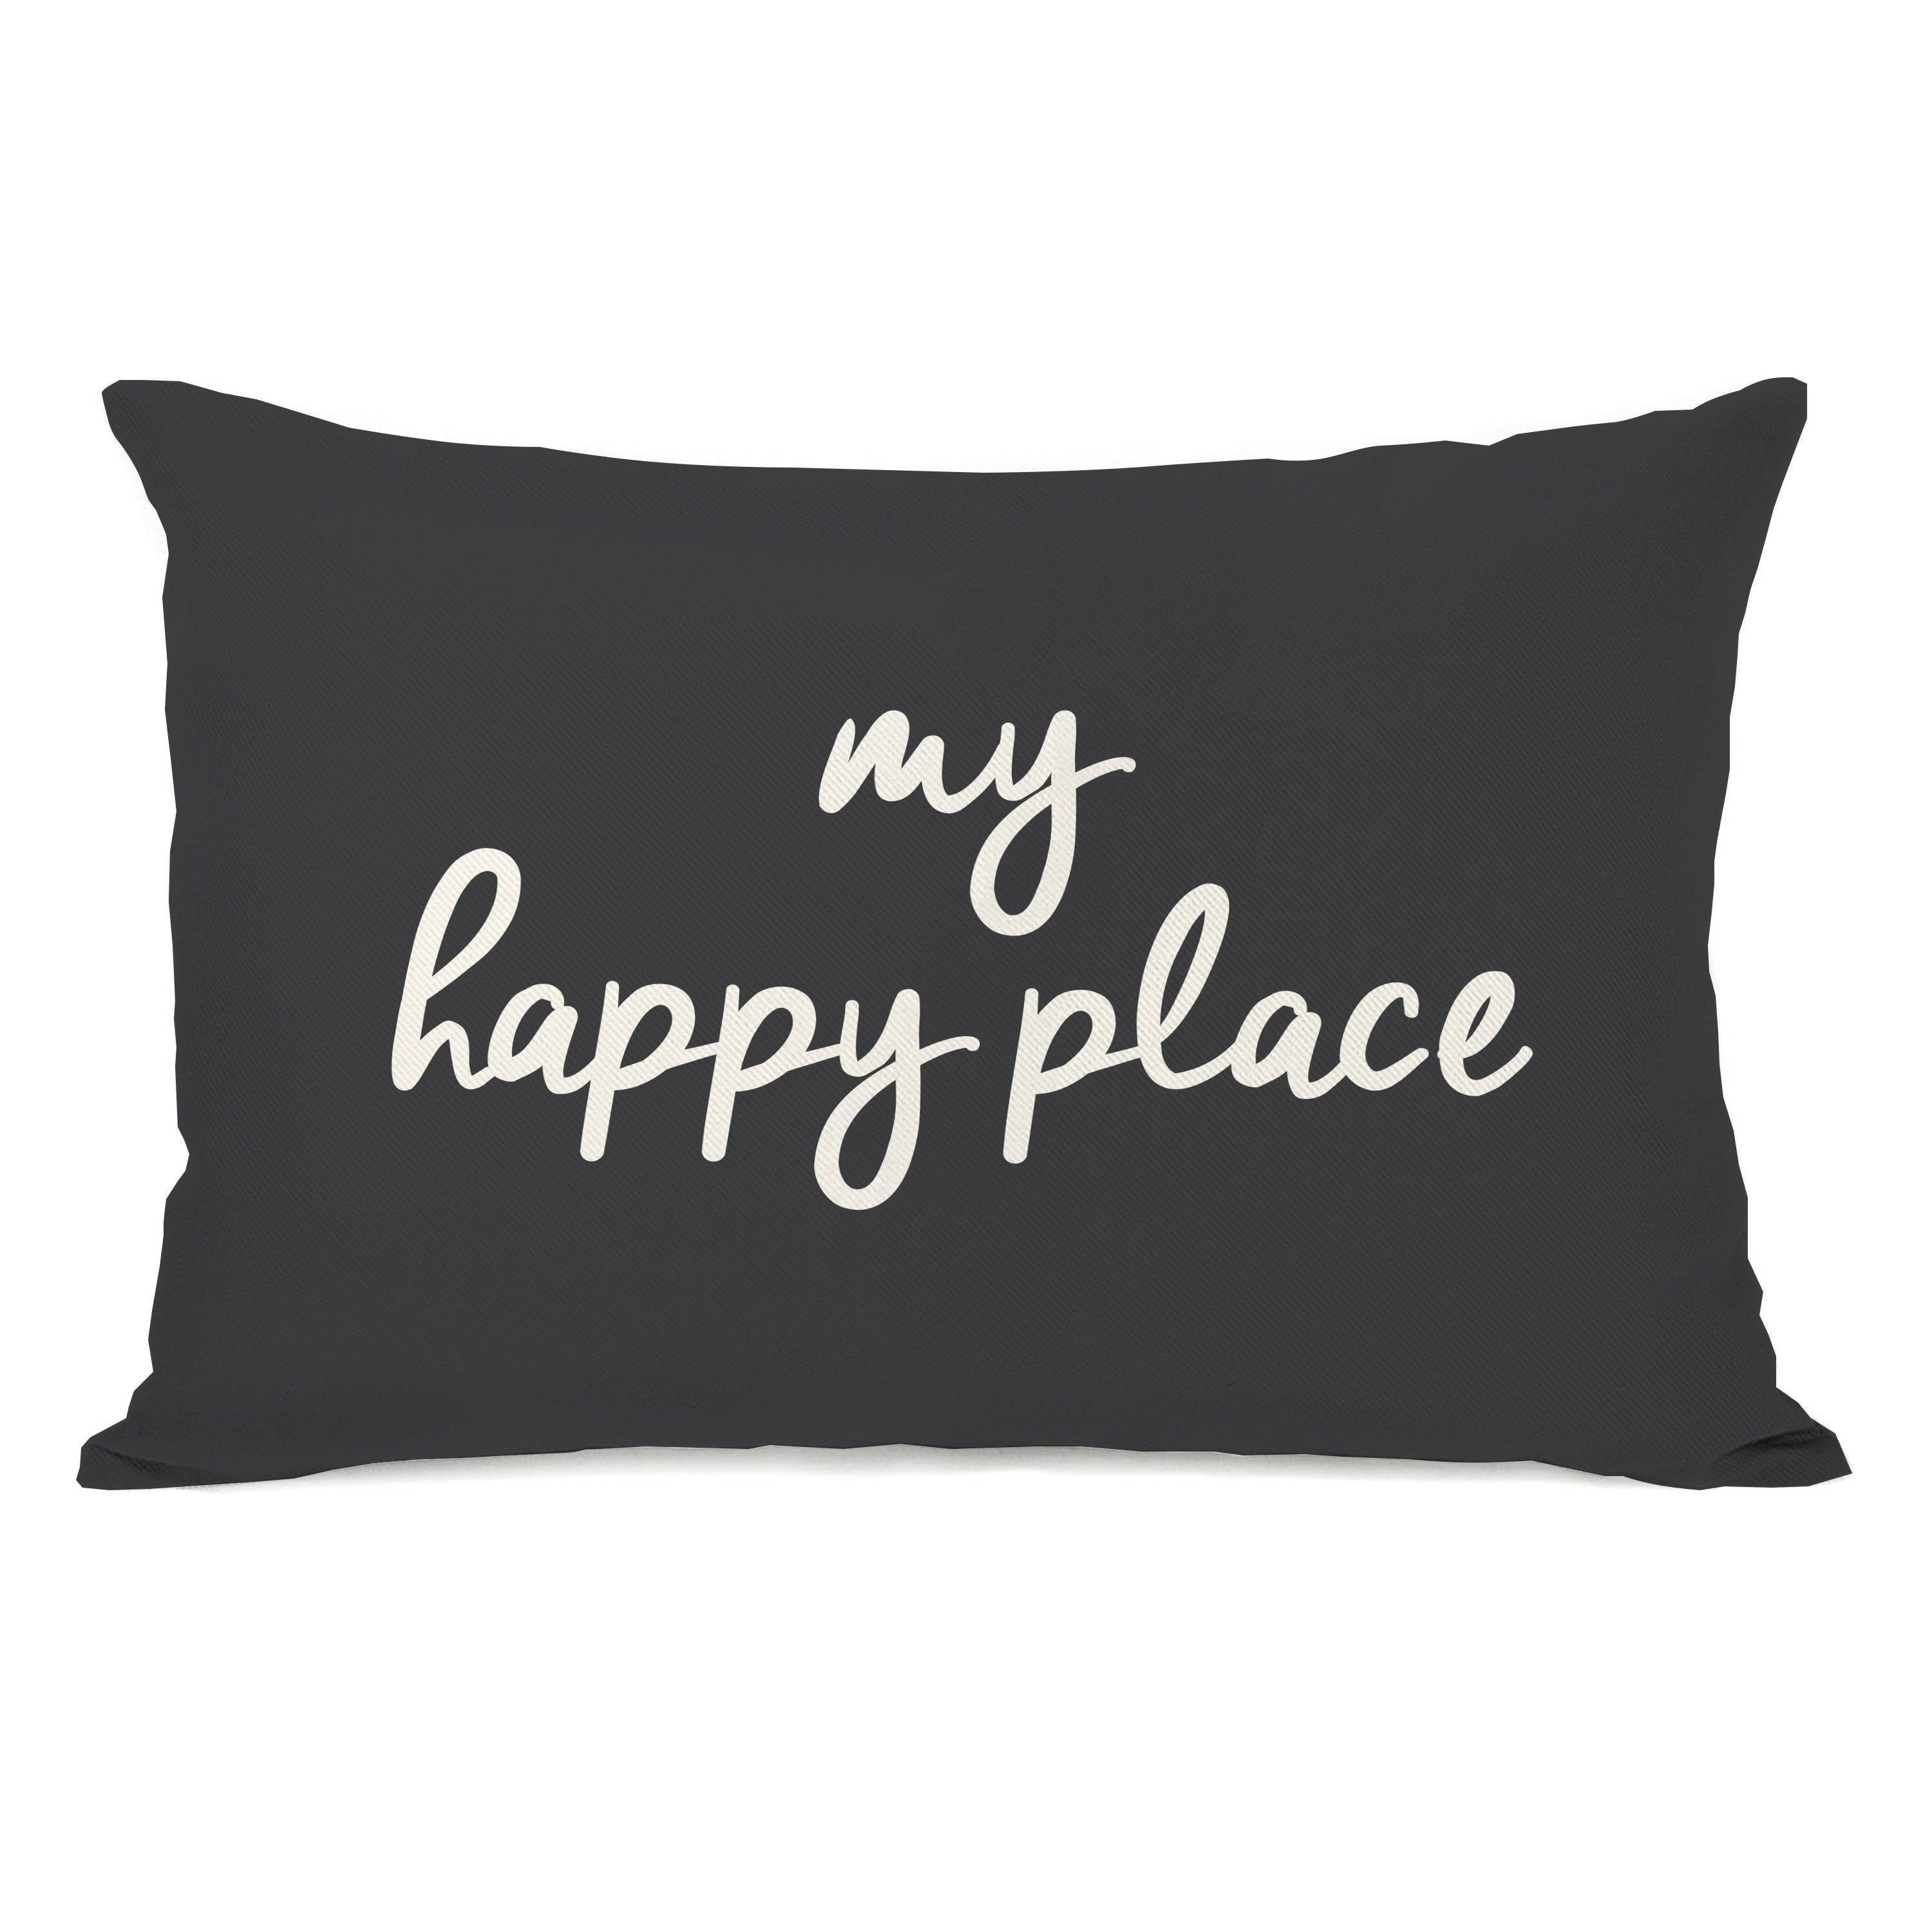 My Happy Place Charcoal Lumbar Pillow Overstock 31286126